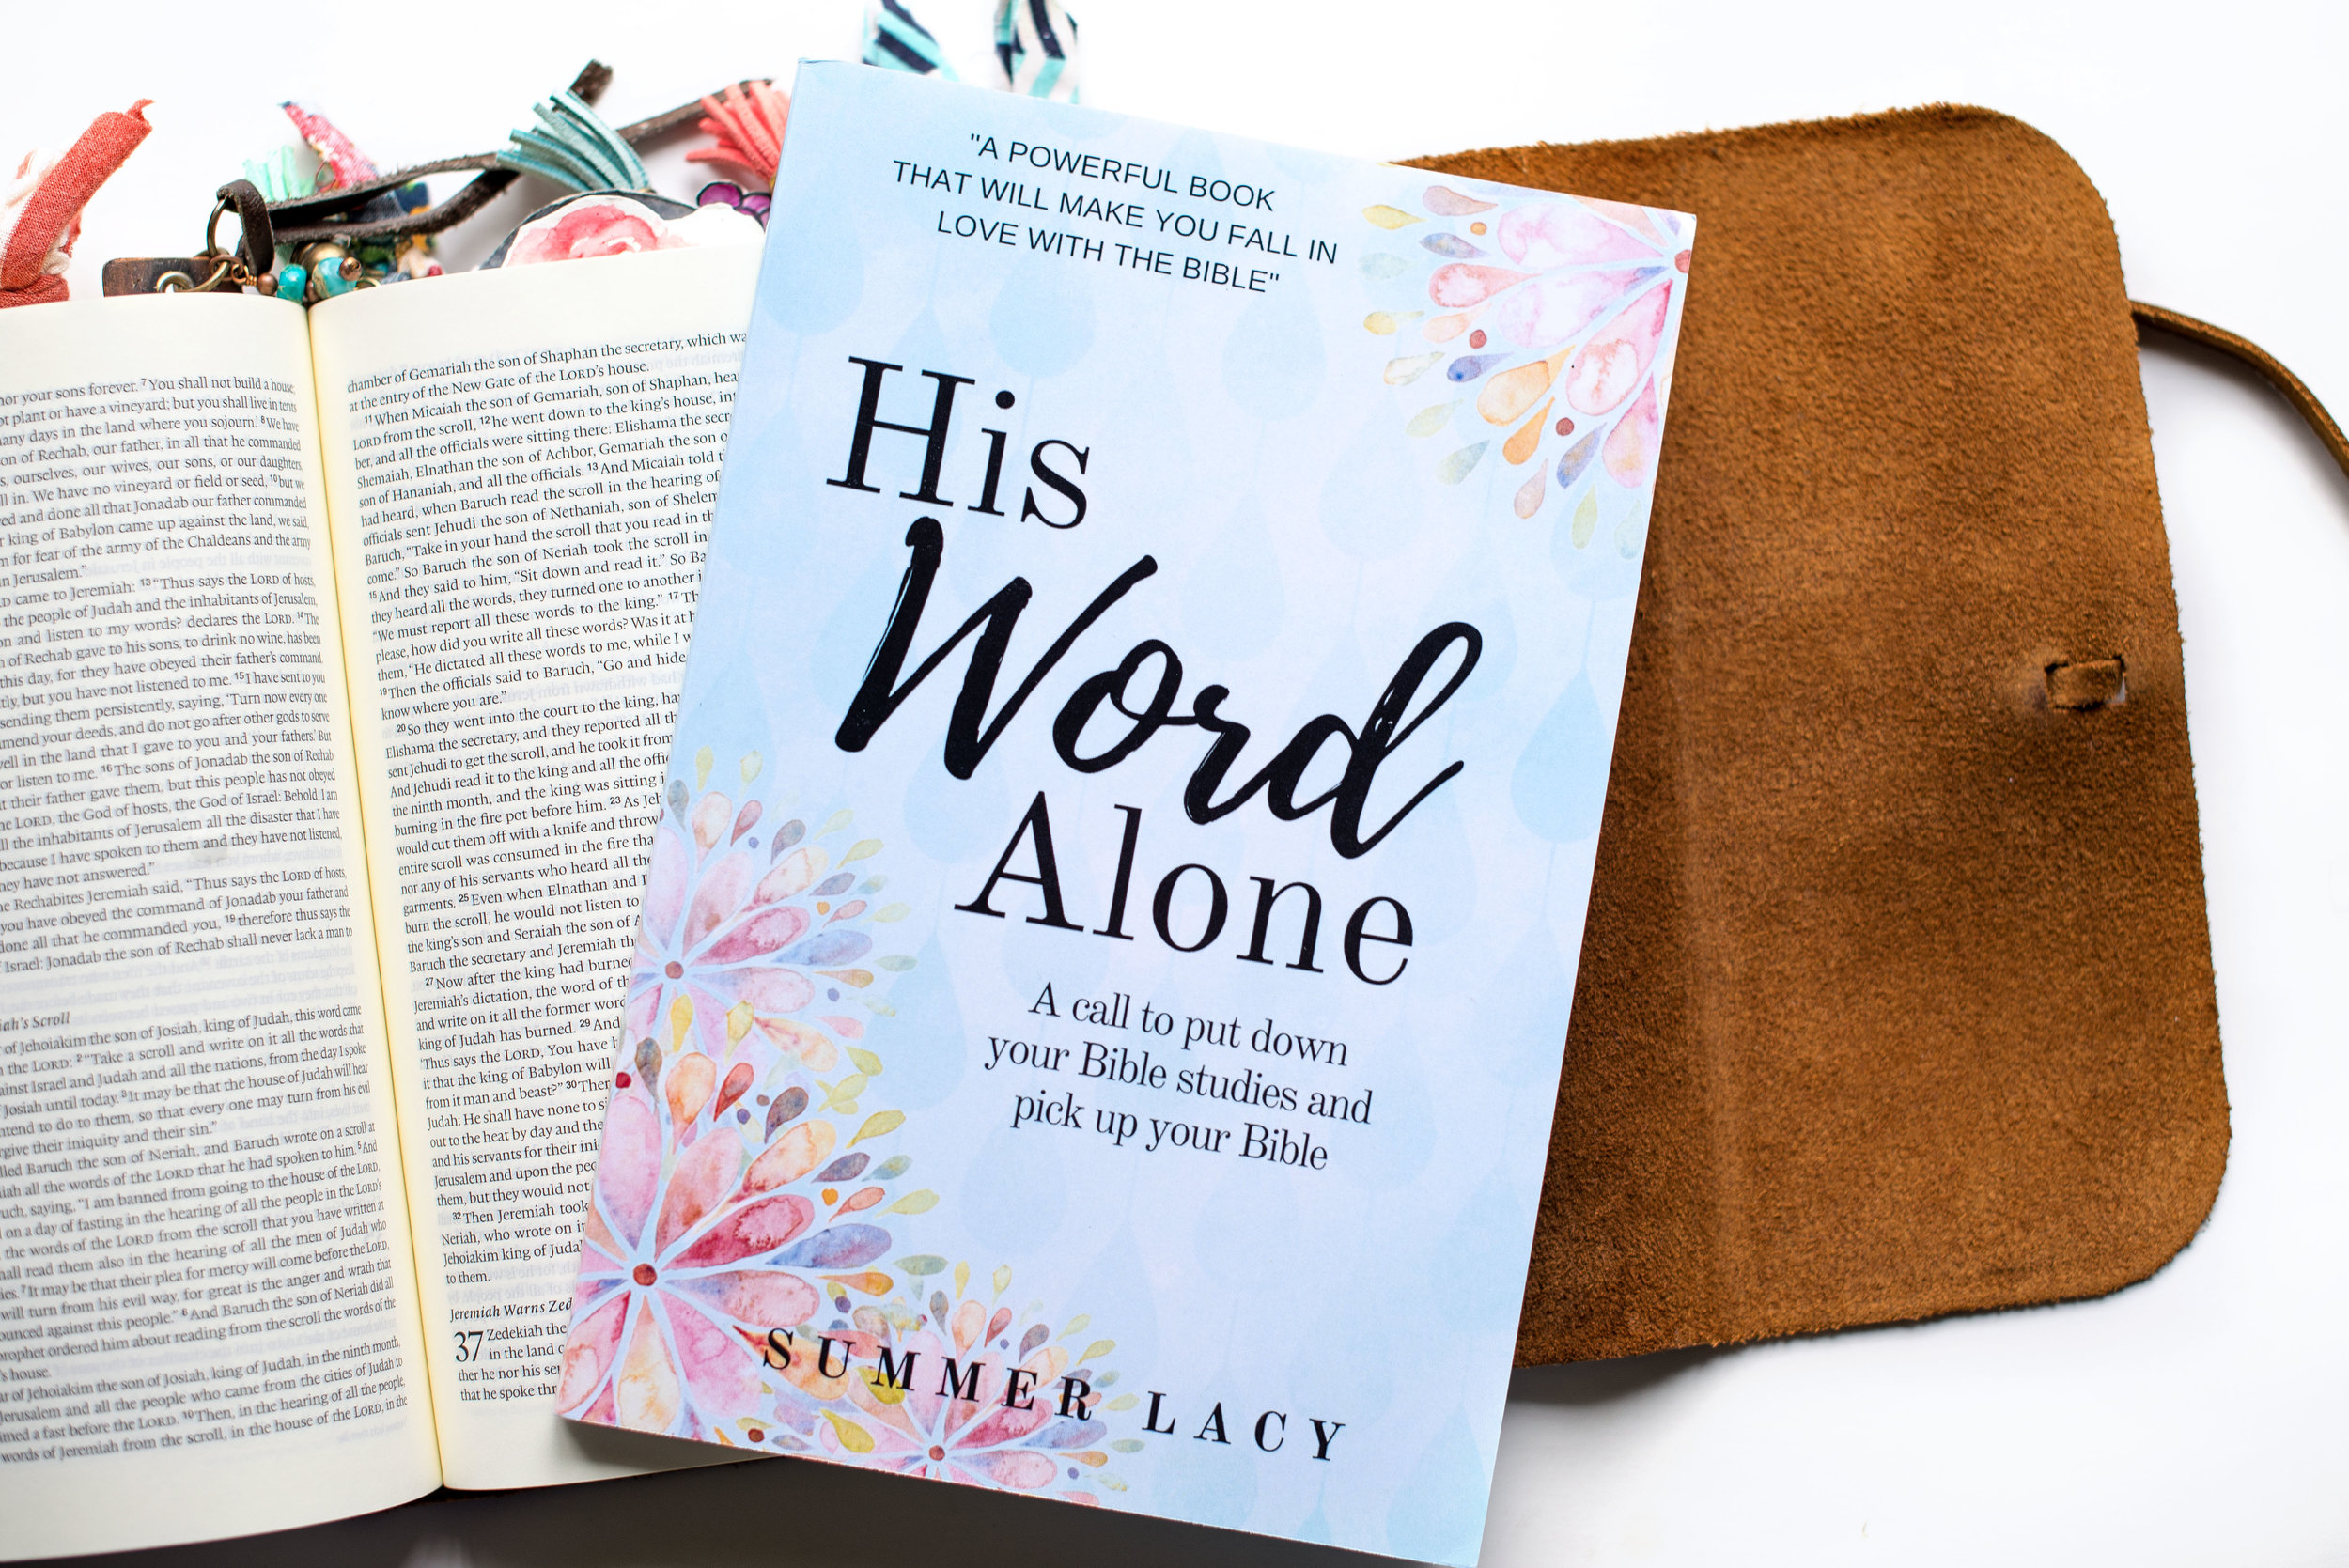 Are you ready to put the Bible back into your Bible study? - The second edition of my book, His Word Alone; A call to put down your Bible studies and pick up your Bibleis now available.  Order it today!  HERE.